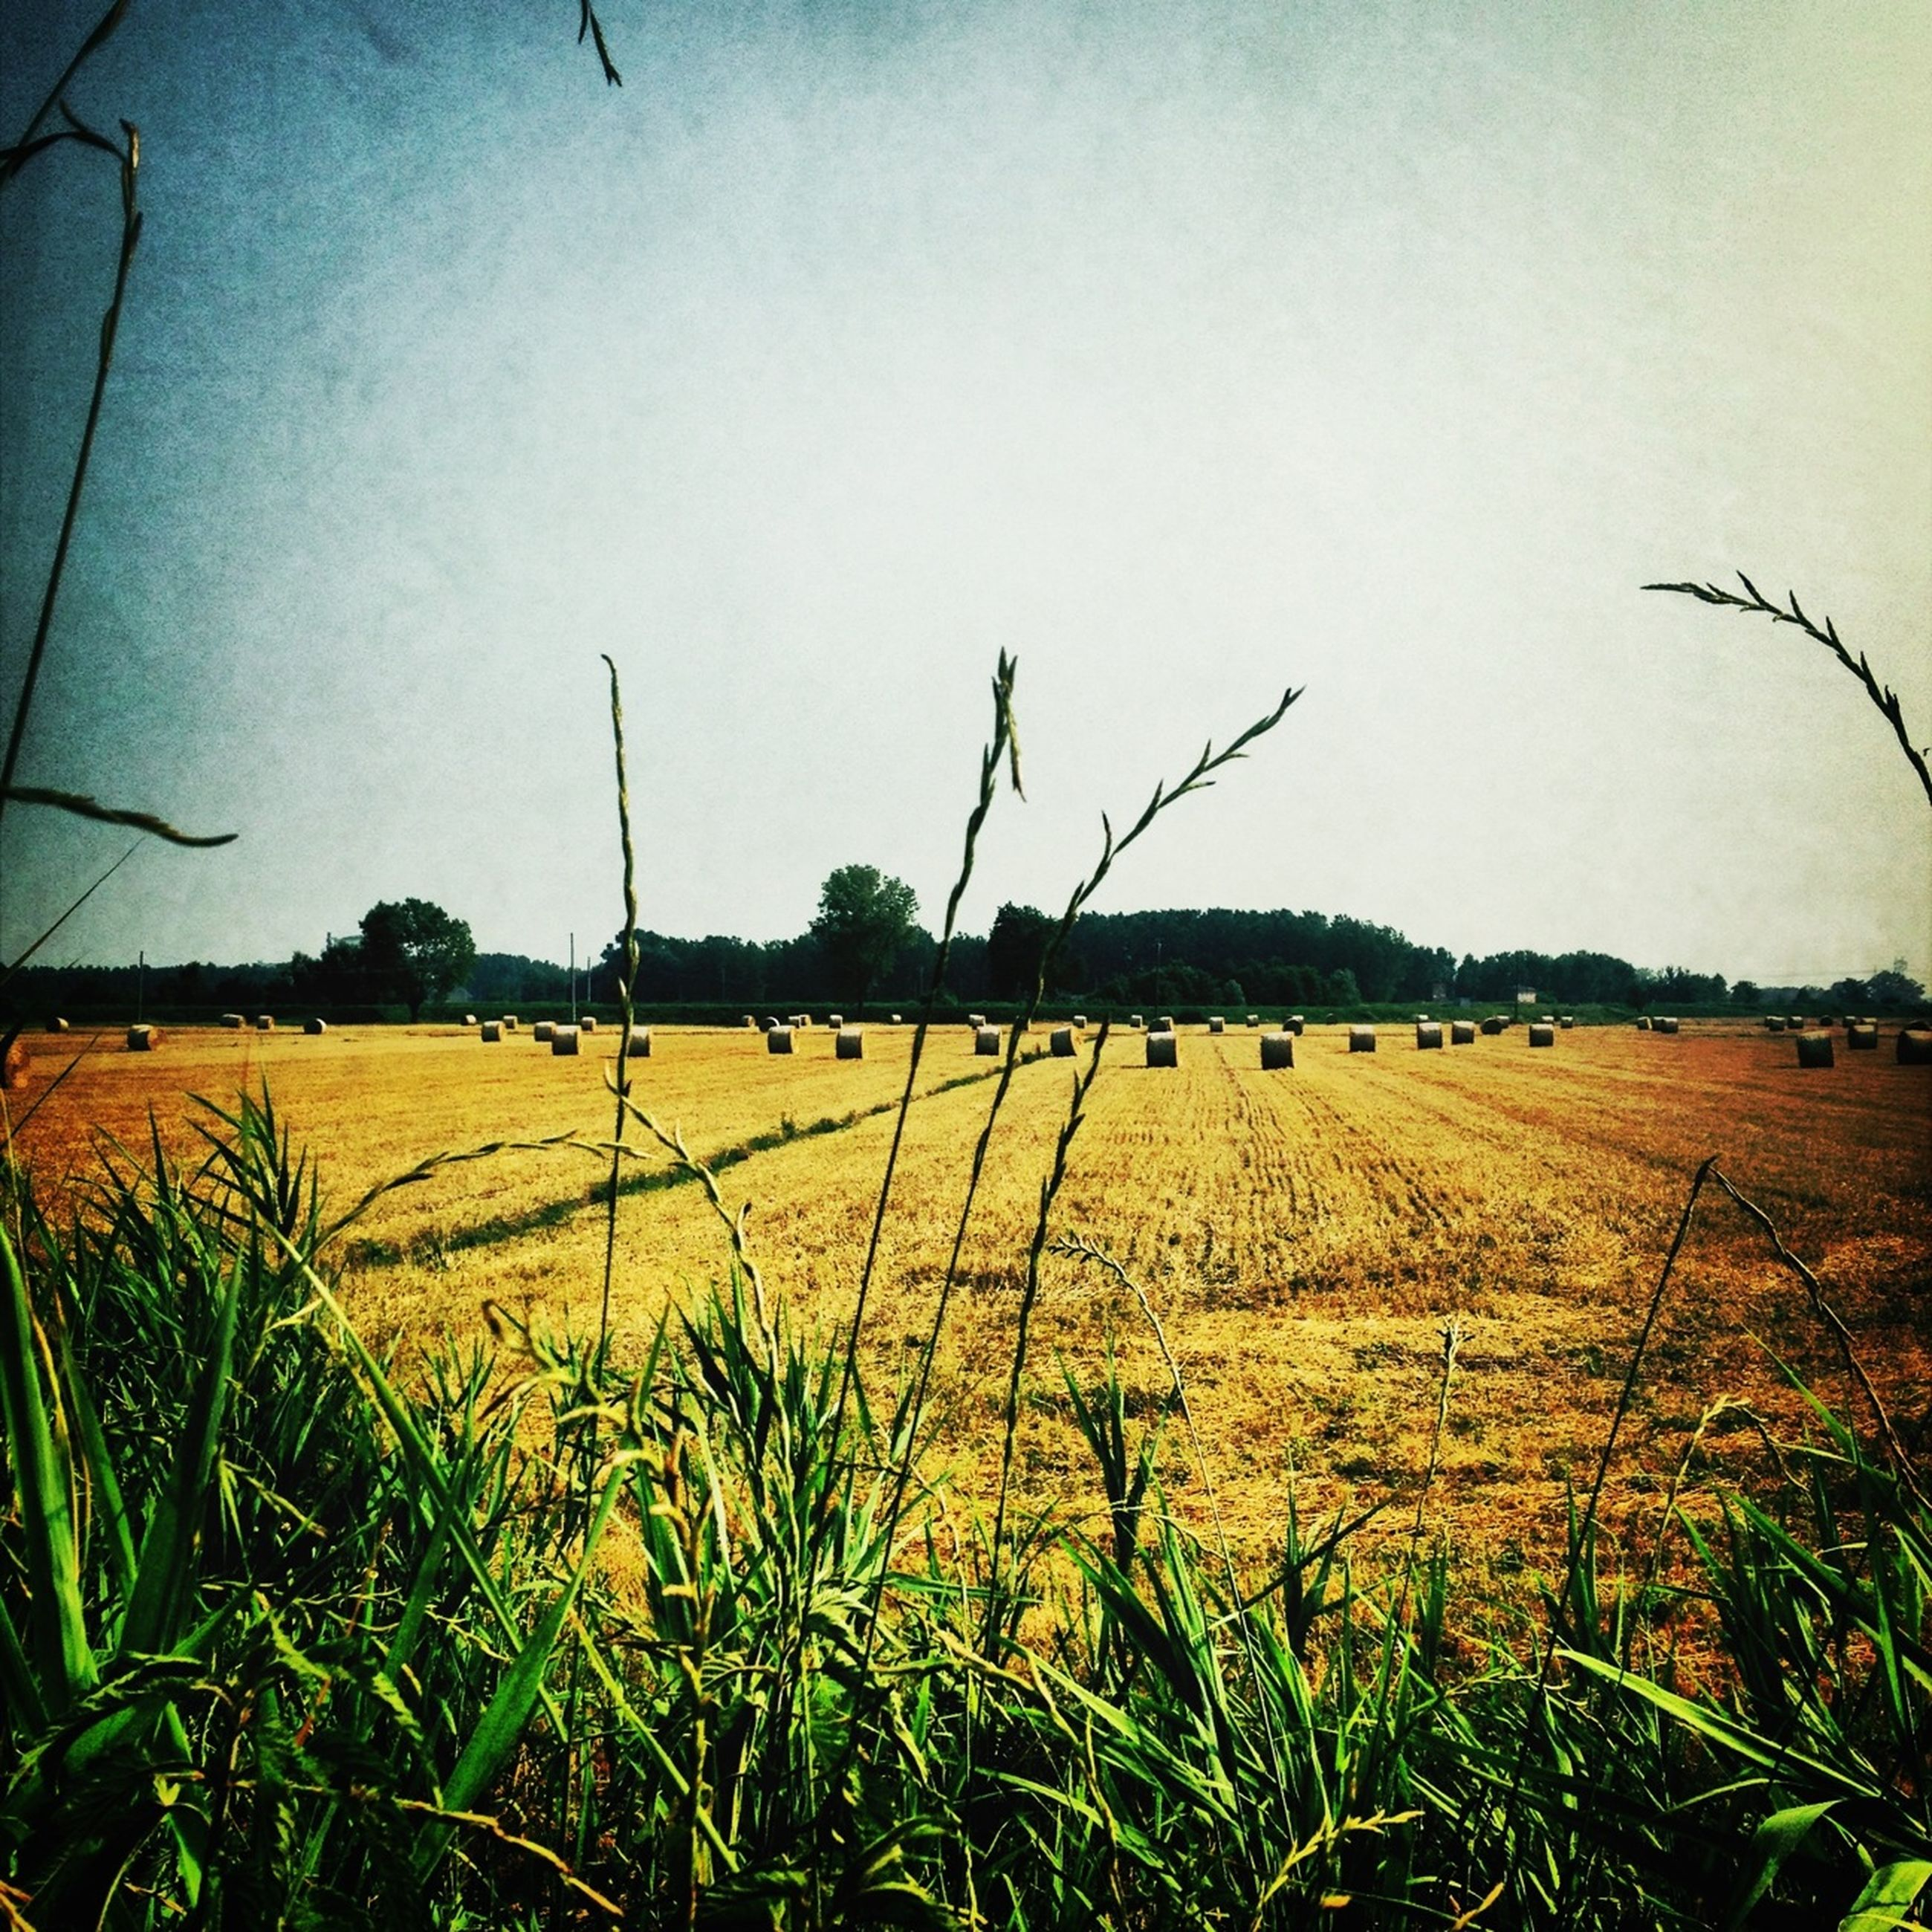 field, agriculture, rural scene, landscape, farm, crop, sky, tranquil scene, tranquility, cultivated land, grass, growth, nature, scenics, beauty in nature, cereal plant, horizon over land, plant, harvesting, bale